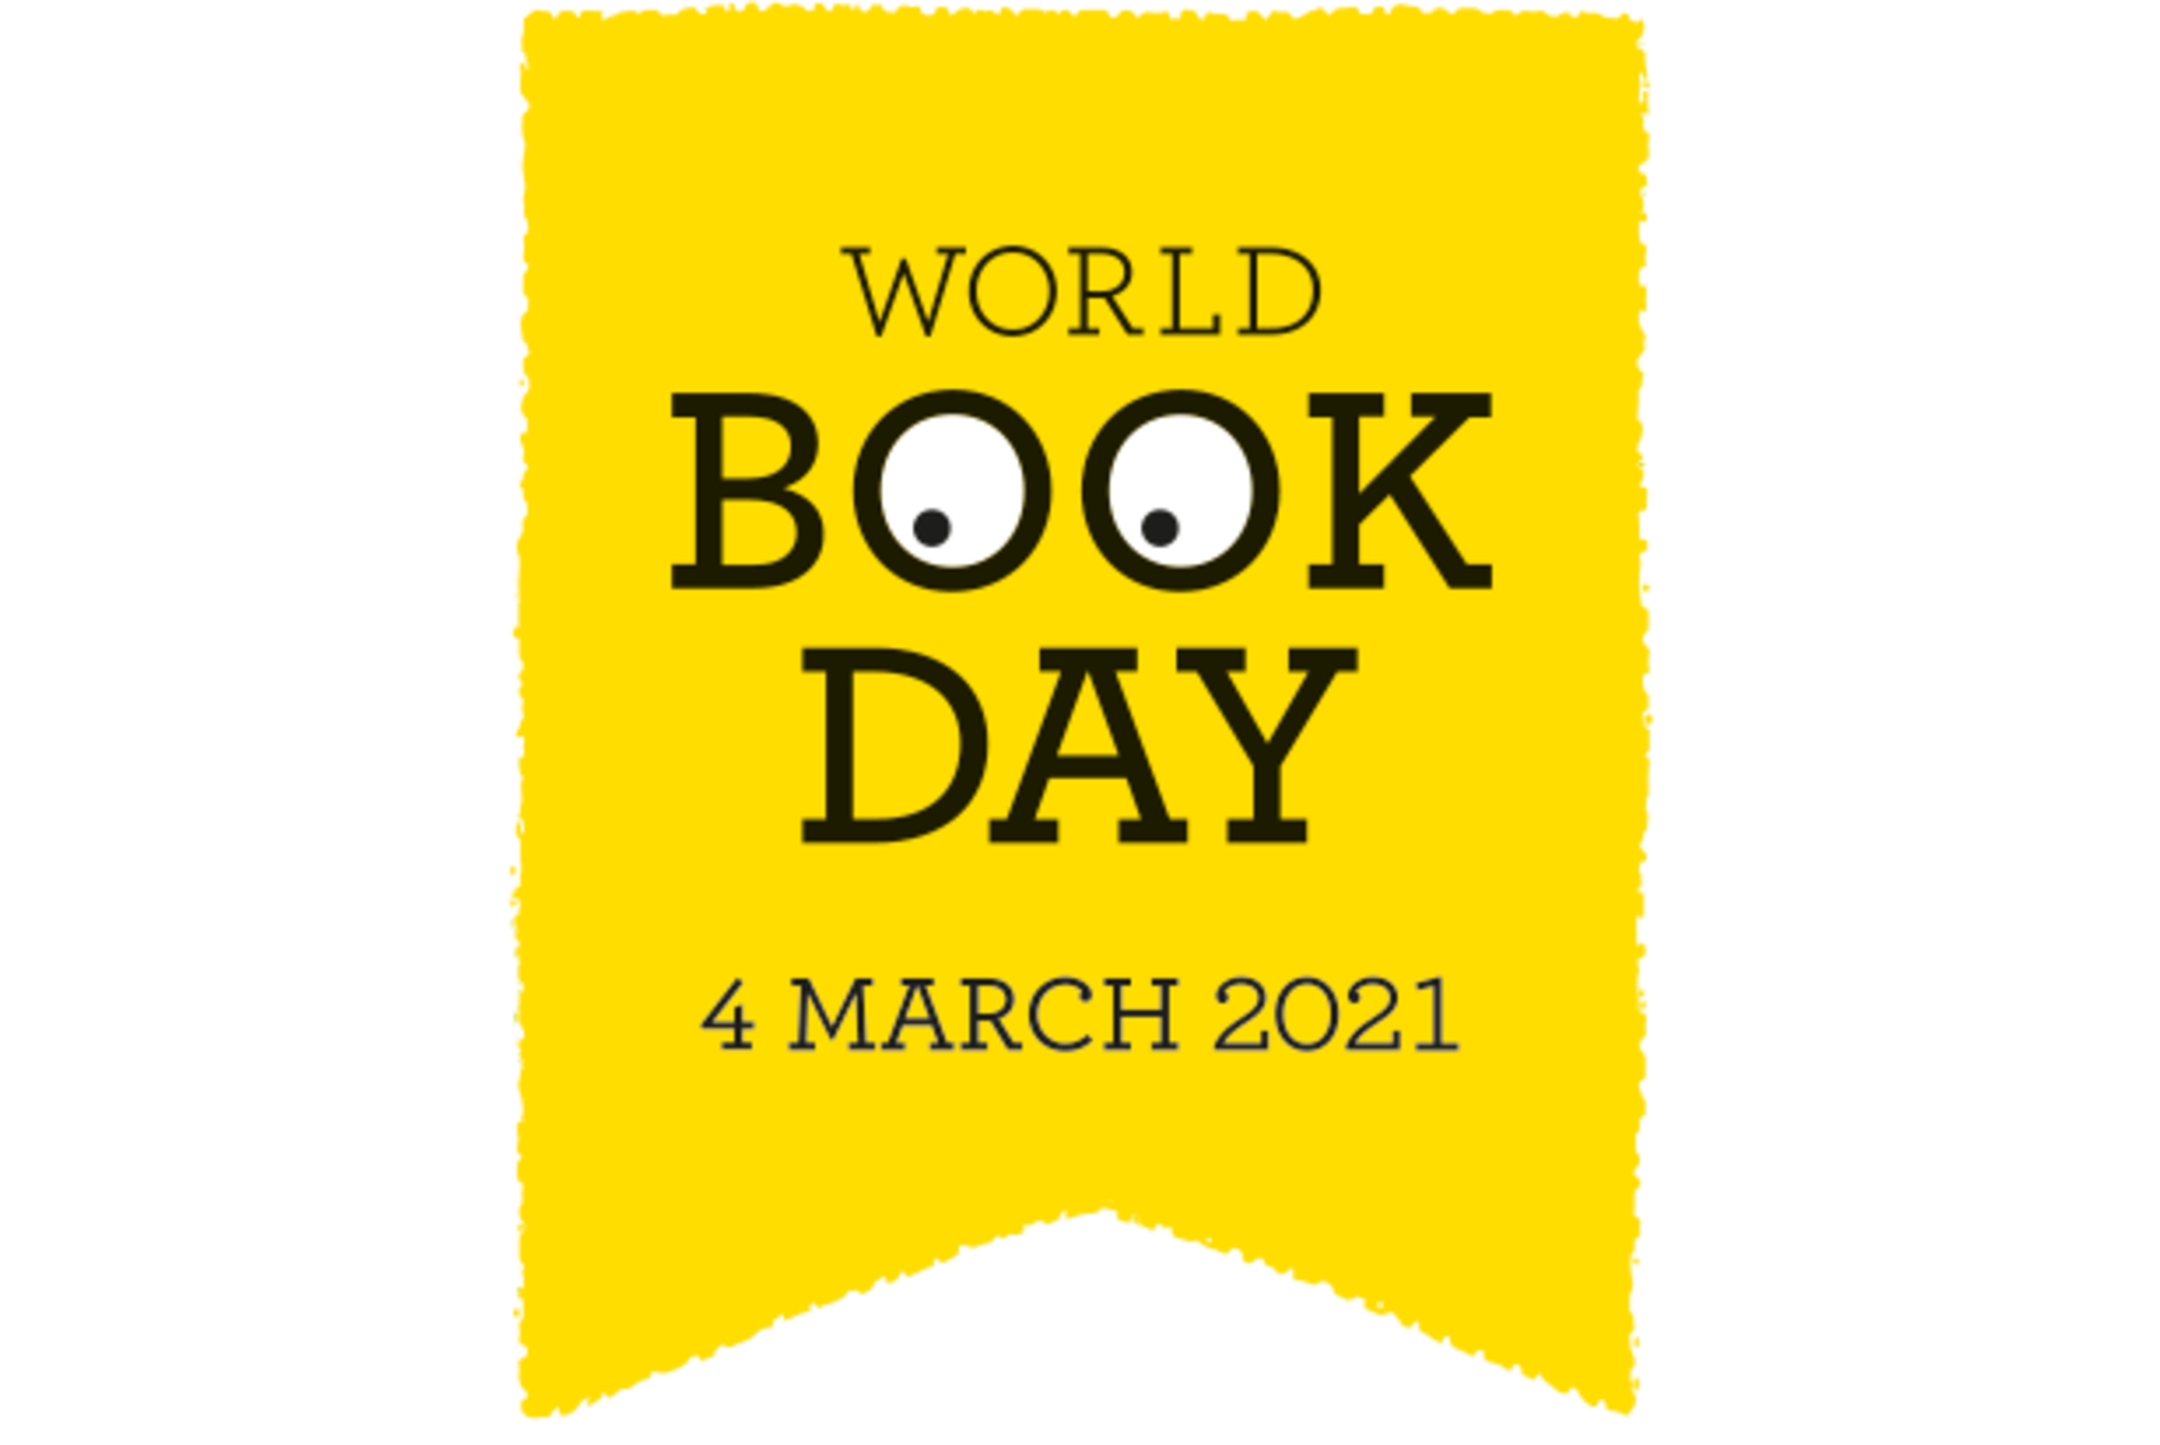 World book day logo - 4 March 2021